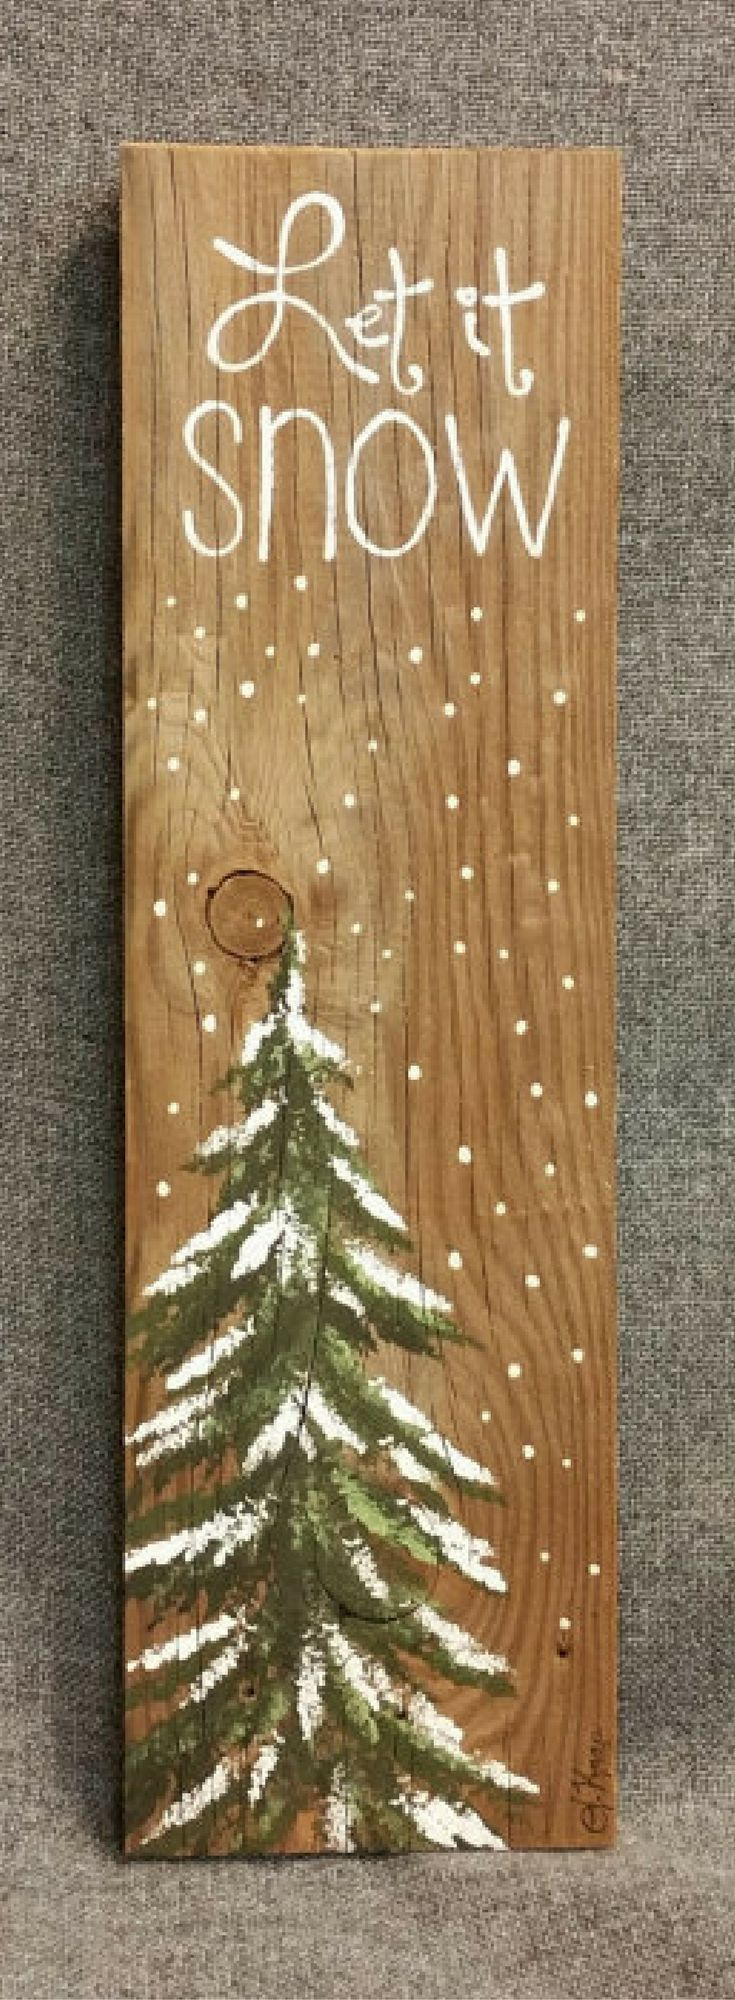 Let it Snow, Hand painted Christmas decorations, winter greenery, Winter Reclaimed Wood Pallet Art, Pine tree, Christmas, Rustic Christmas decor, Rustic Christmas sign, Rustic decor #affiliate #ad